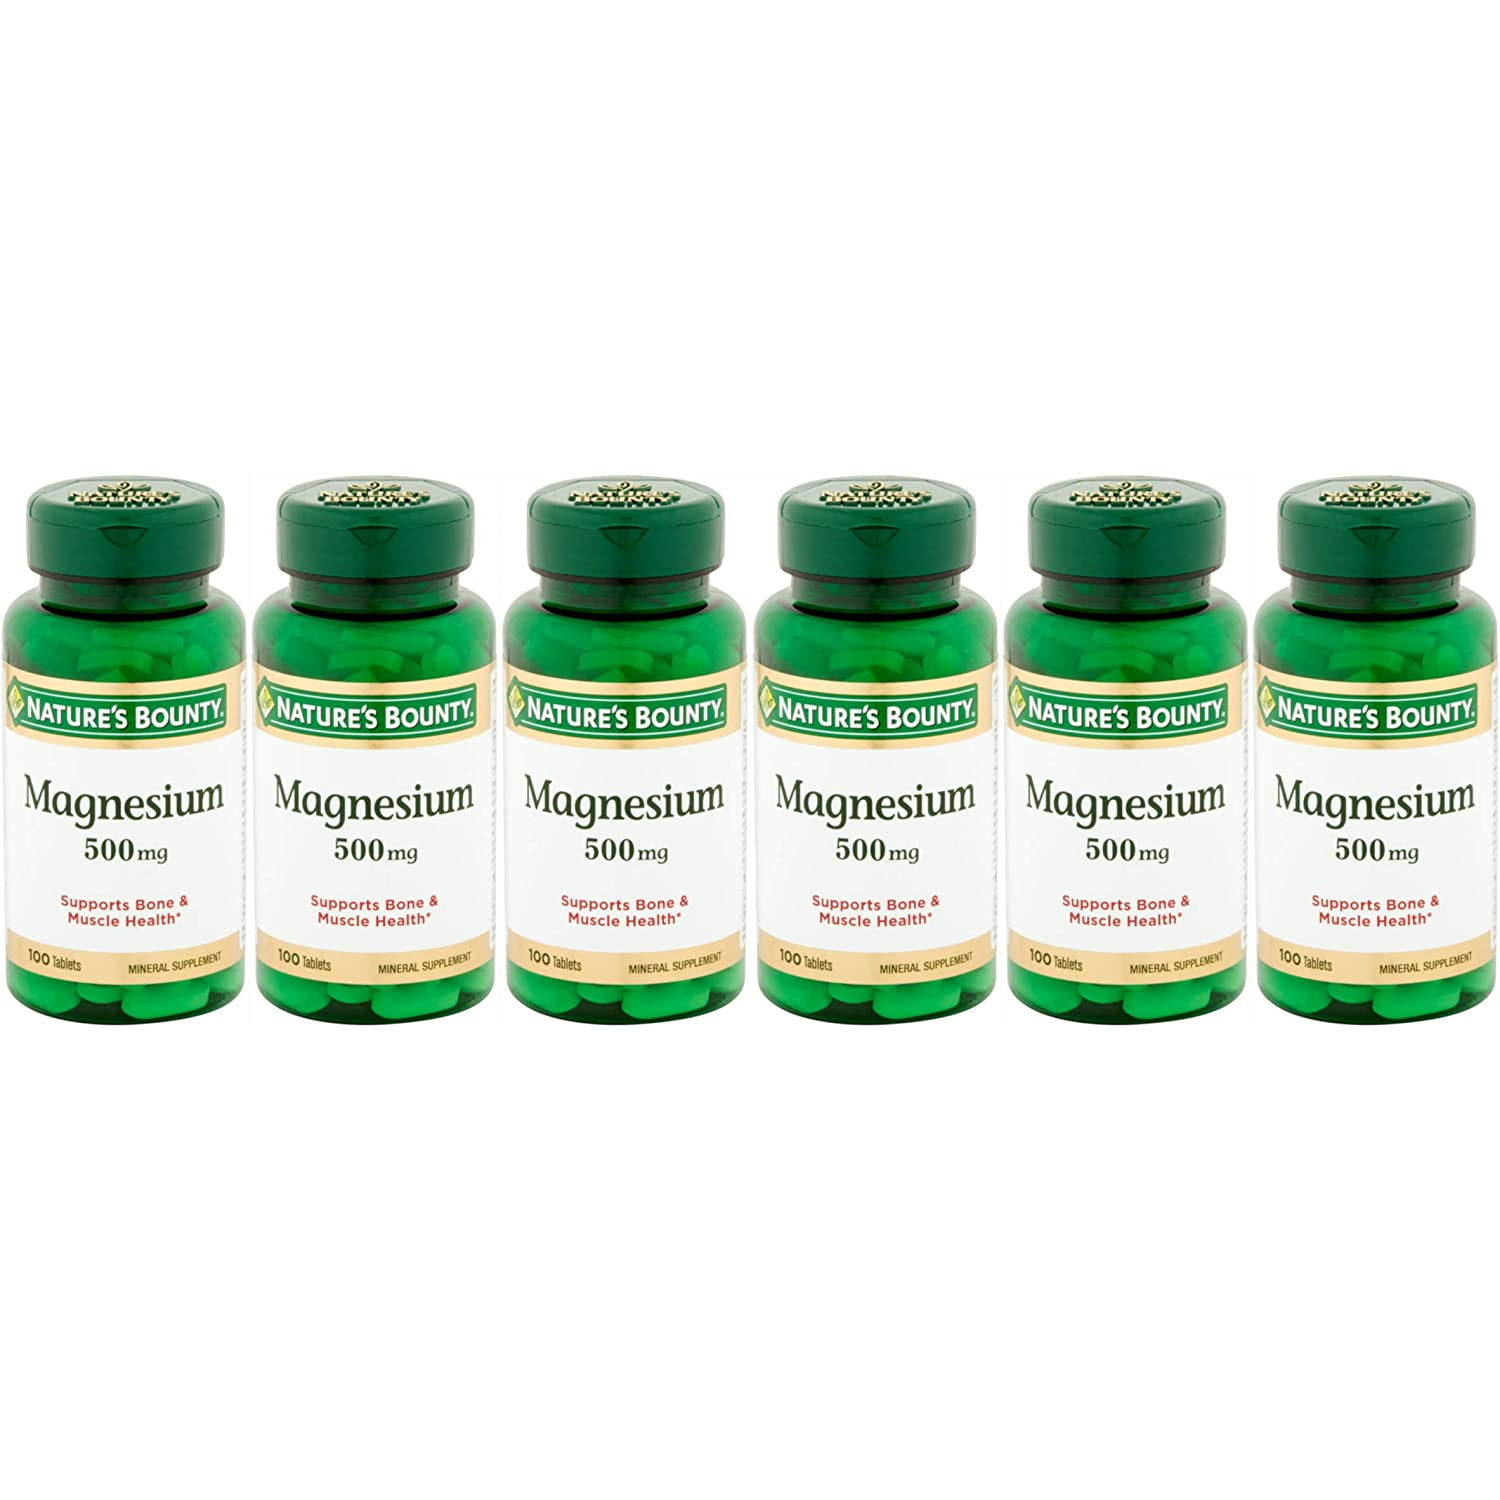 Amazon.com: Natures Bounty Magnesium 500 mg Tablets 100 ea (Pack of 6): Health & Personal Care